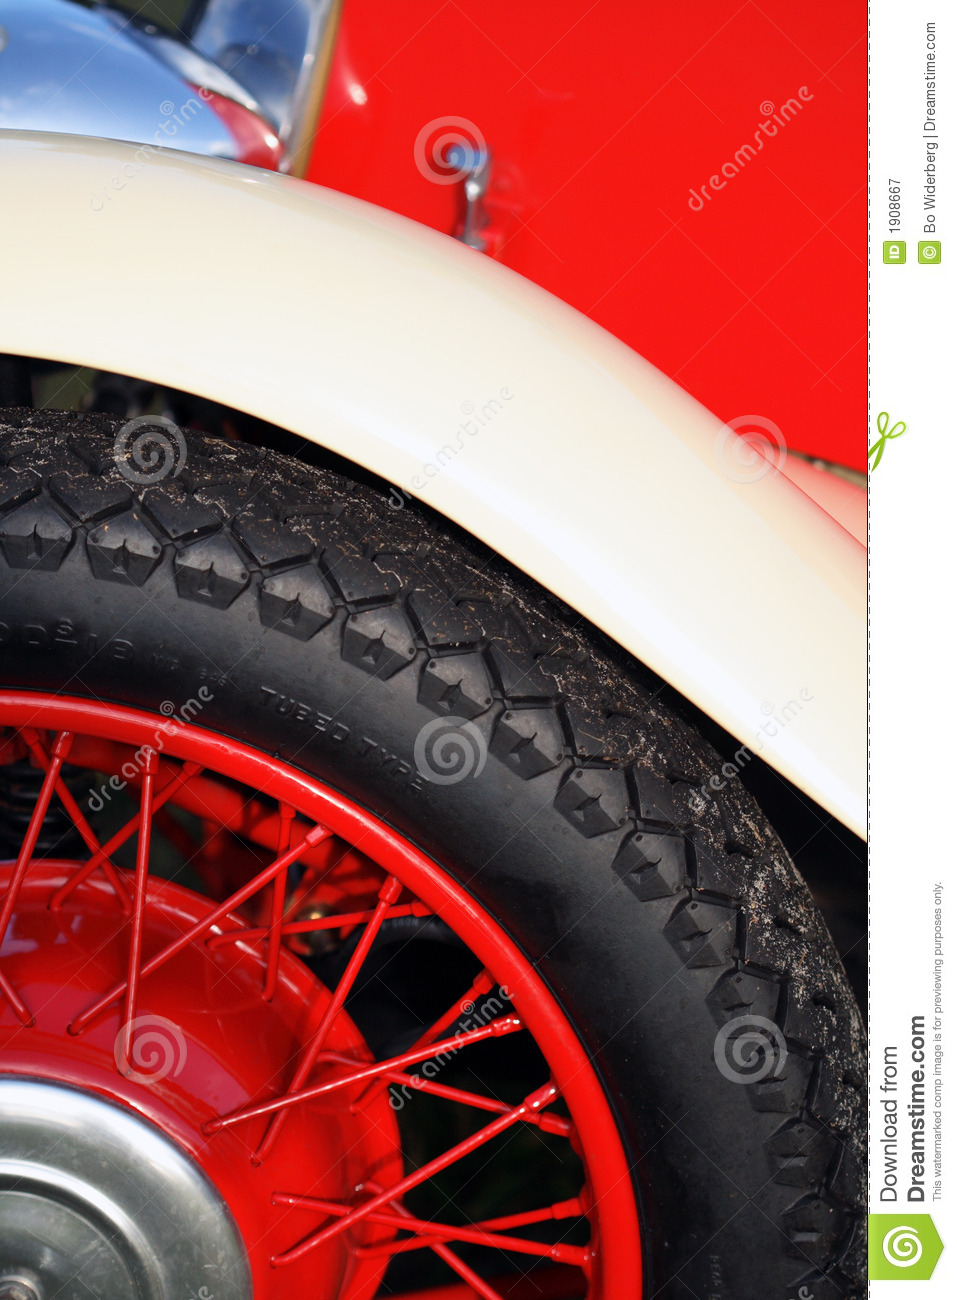 Tire For Less >> Vintage British Car, Fender, Wheel, And Tire Stock Image - Image of tire, abstract: 1908667